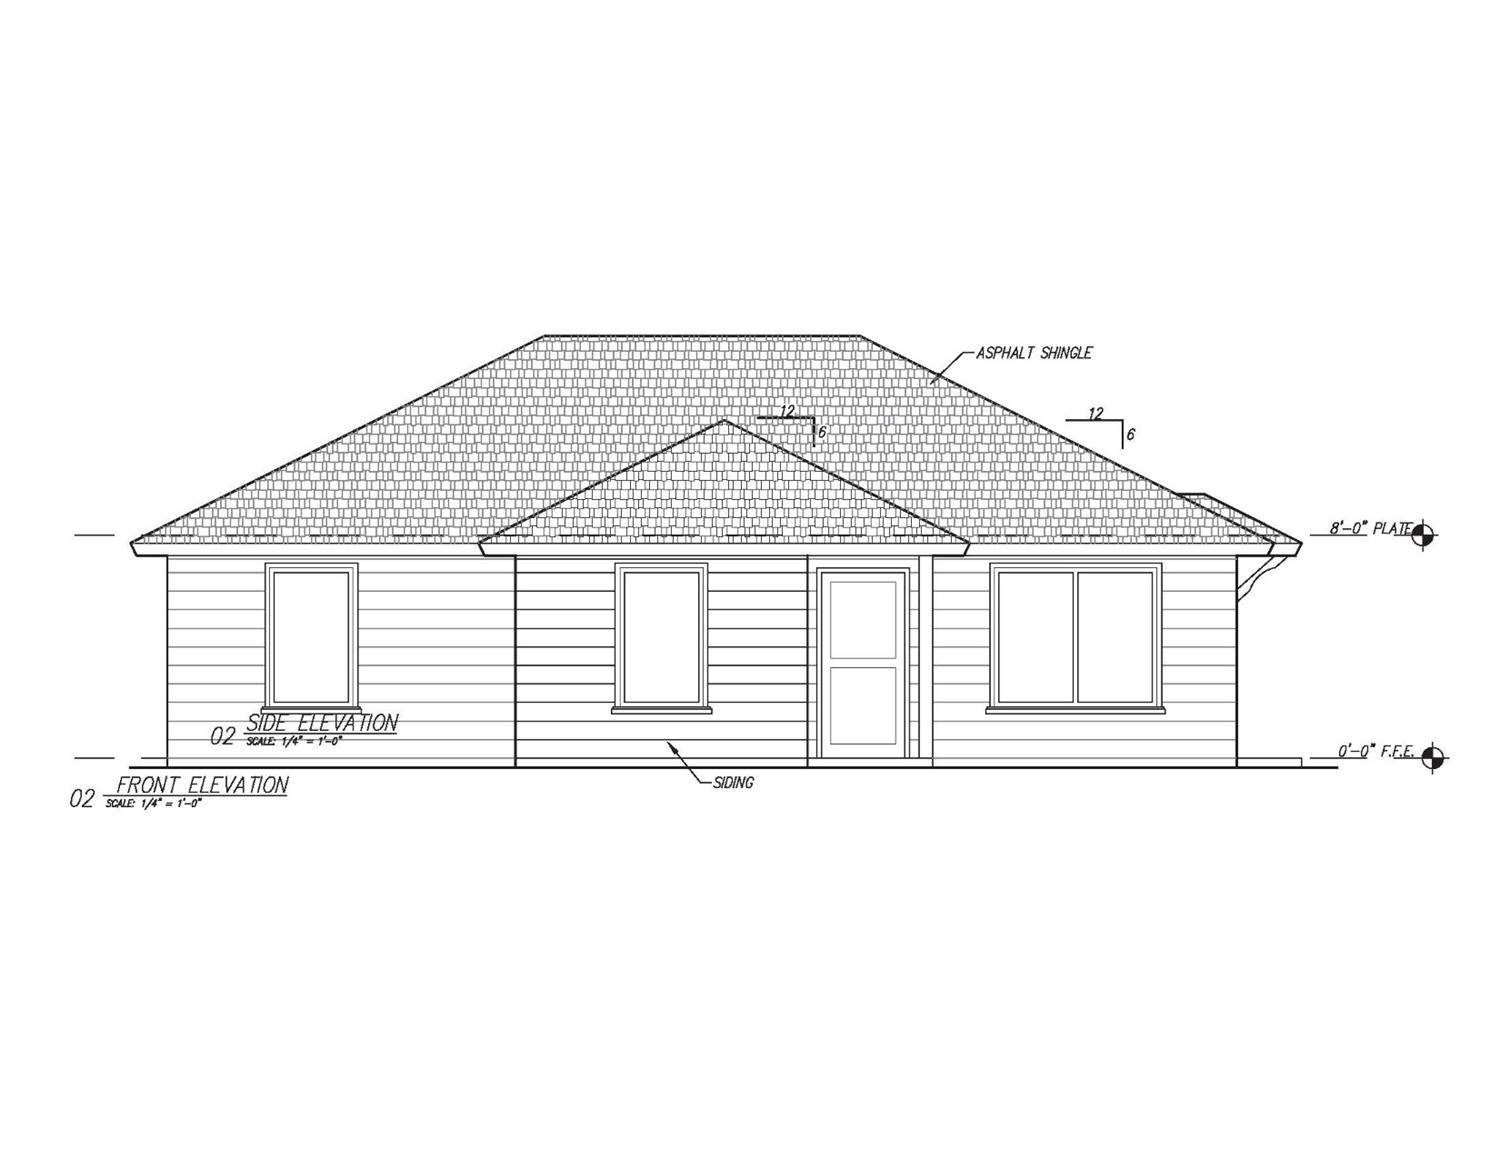 New construction close to Tech & Medical. Perfect for student living or small family. 3 bedroom, 2 bathroom. Estimated completion date of July 10, 2020